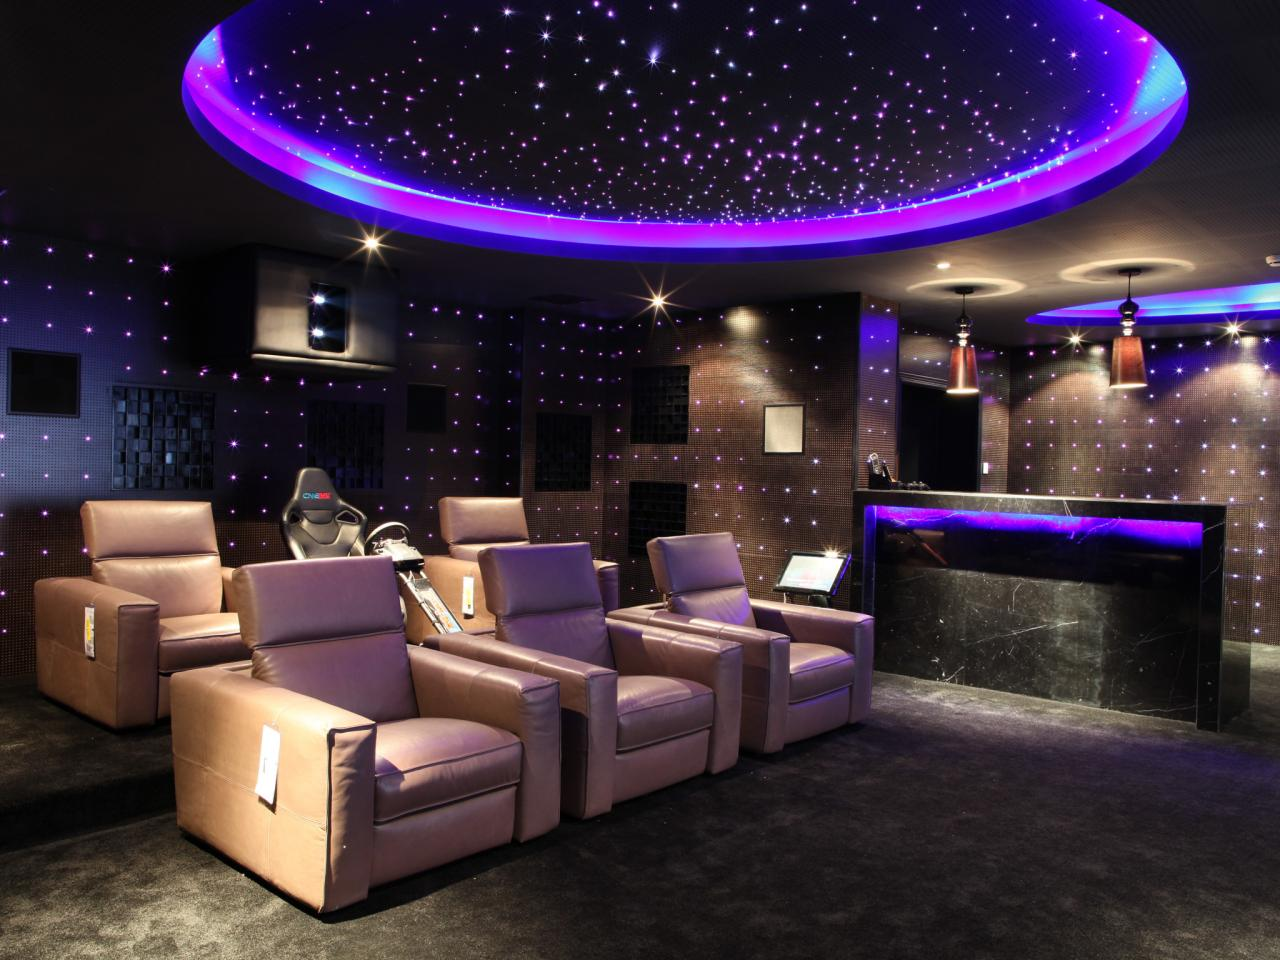 Home Cinema Design Cool Home Theater Design Ideas Pictures Tips & Options  Hgtv Design Decoration